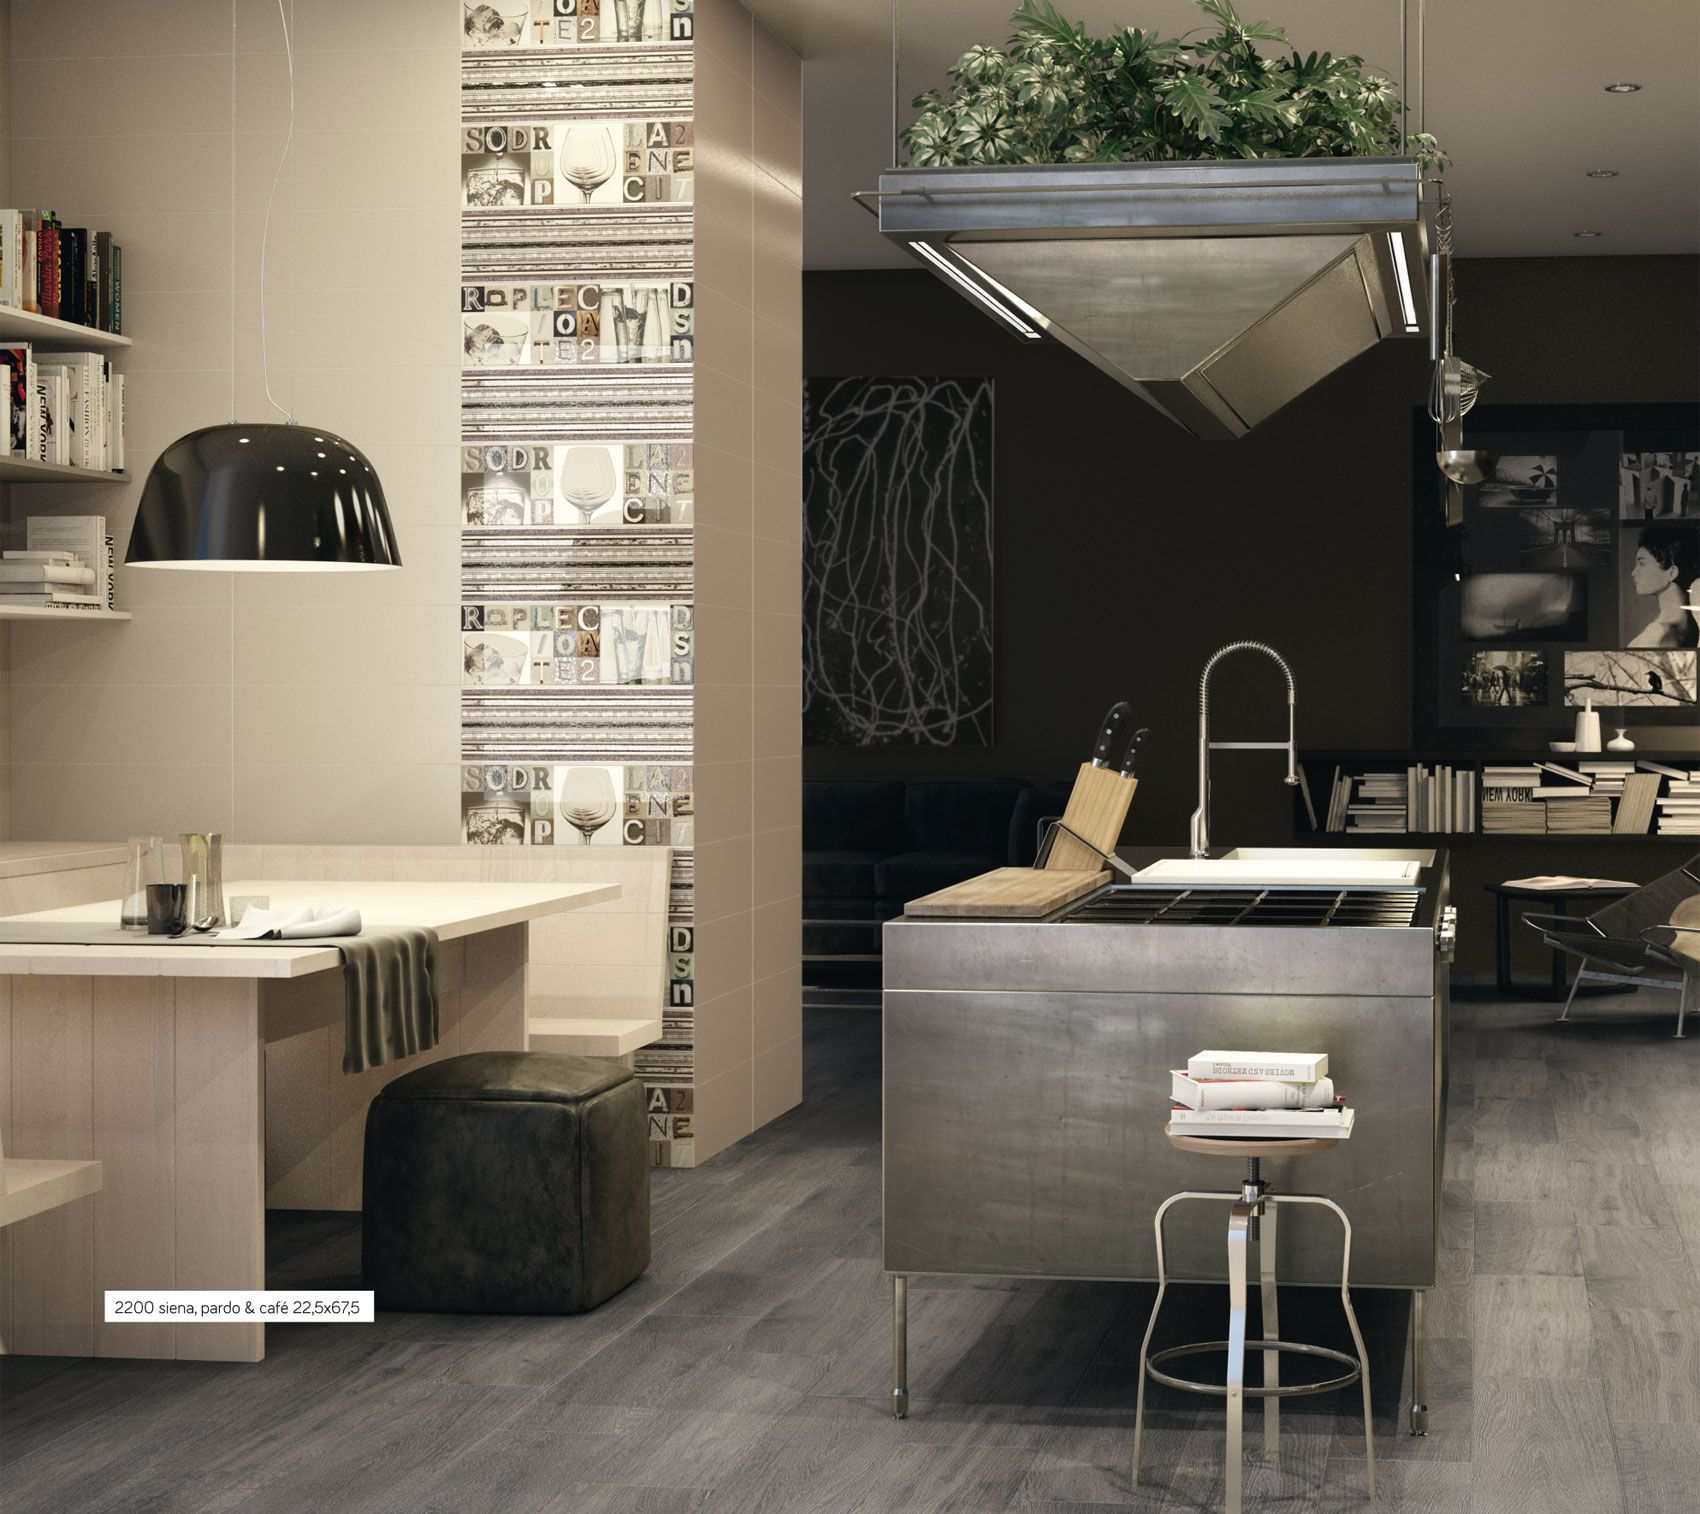 Cozy Kitchen In Neutral Colors 2200 Series Kitchens